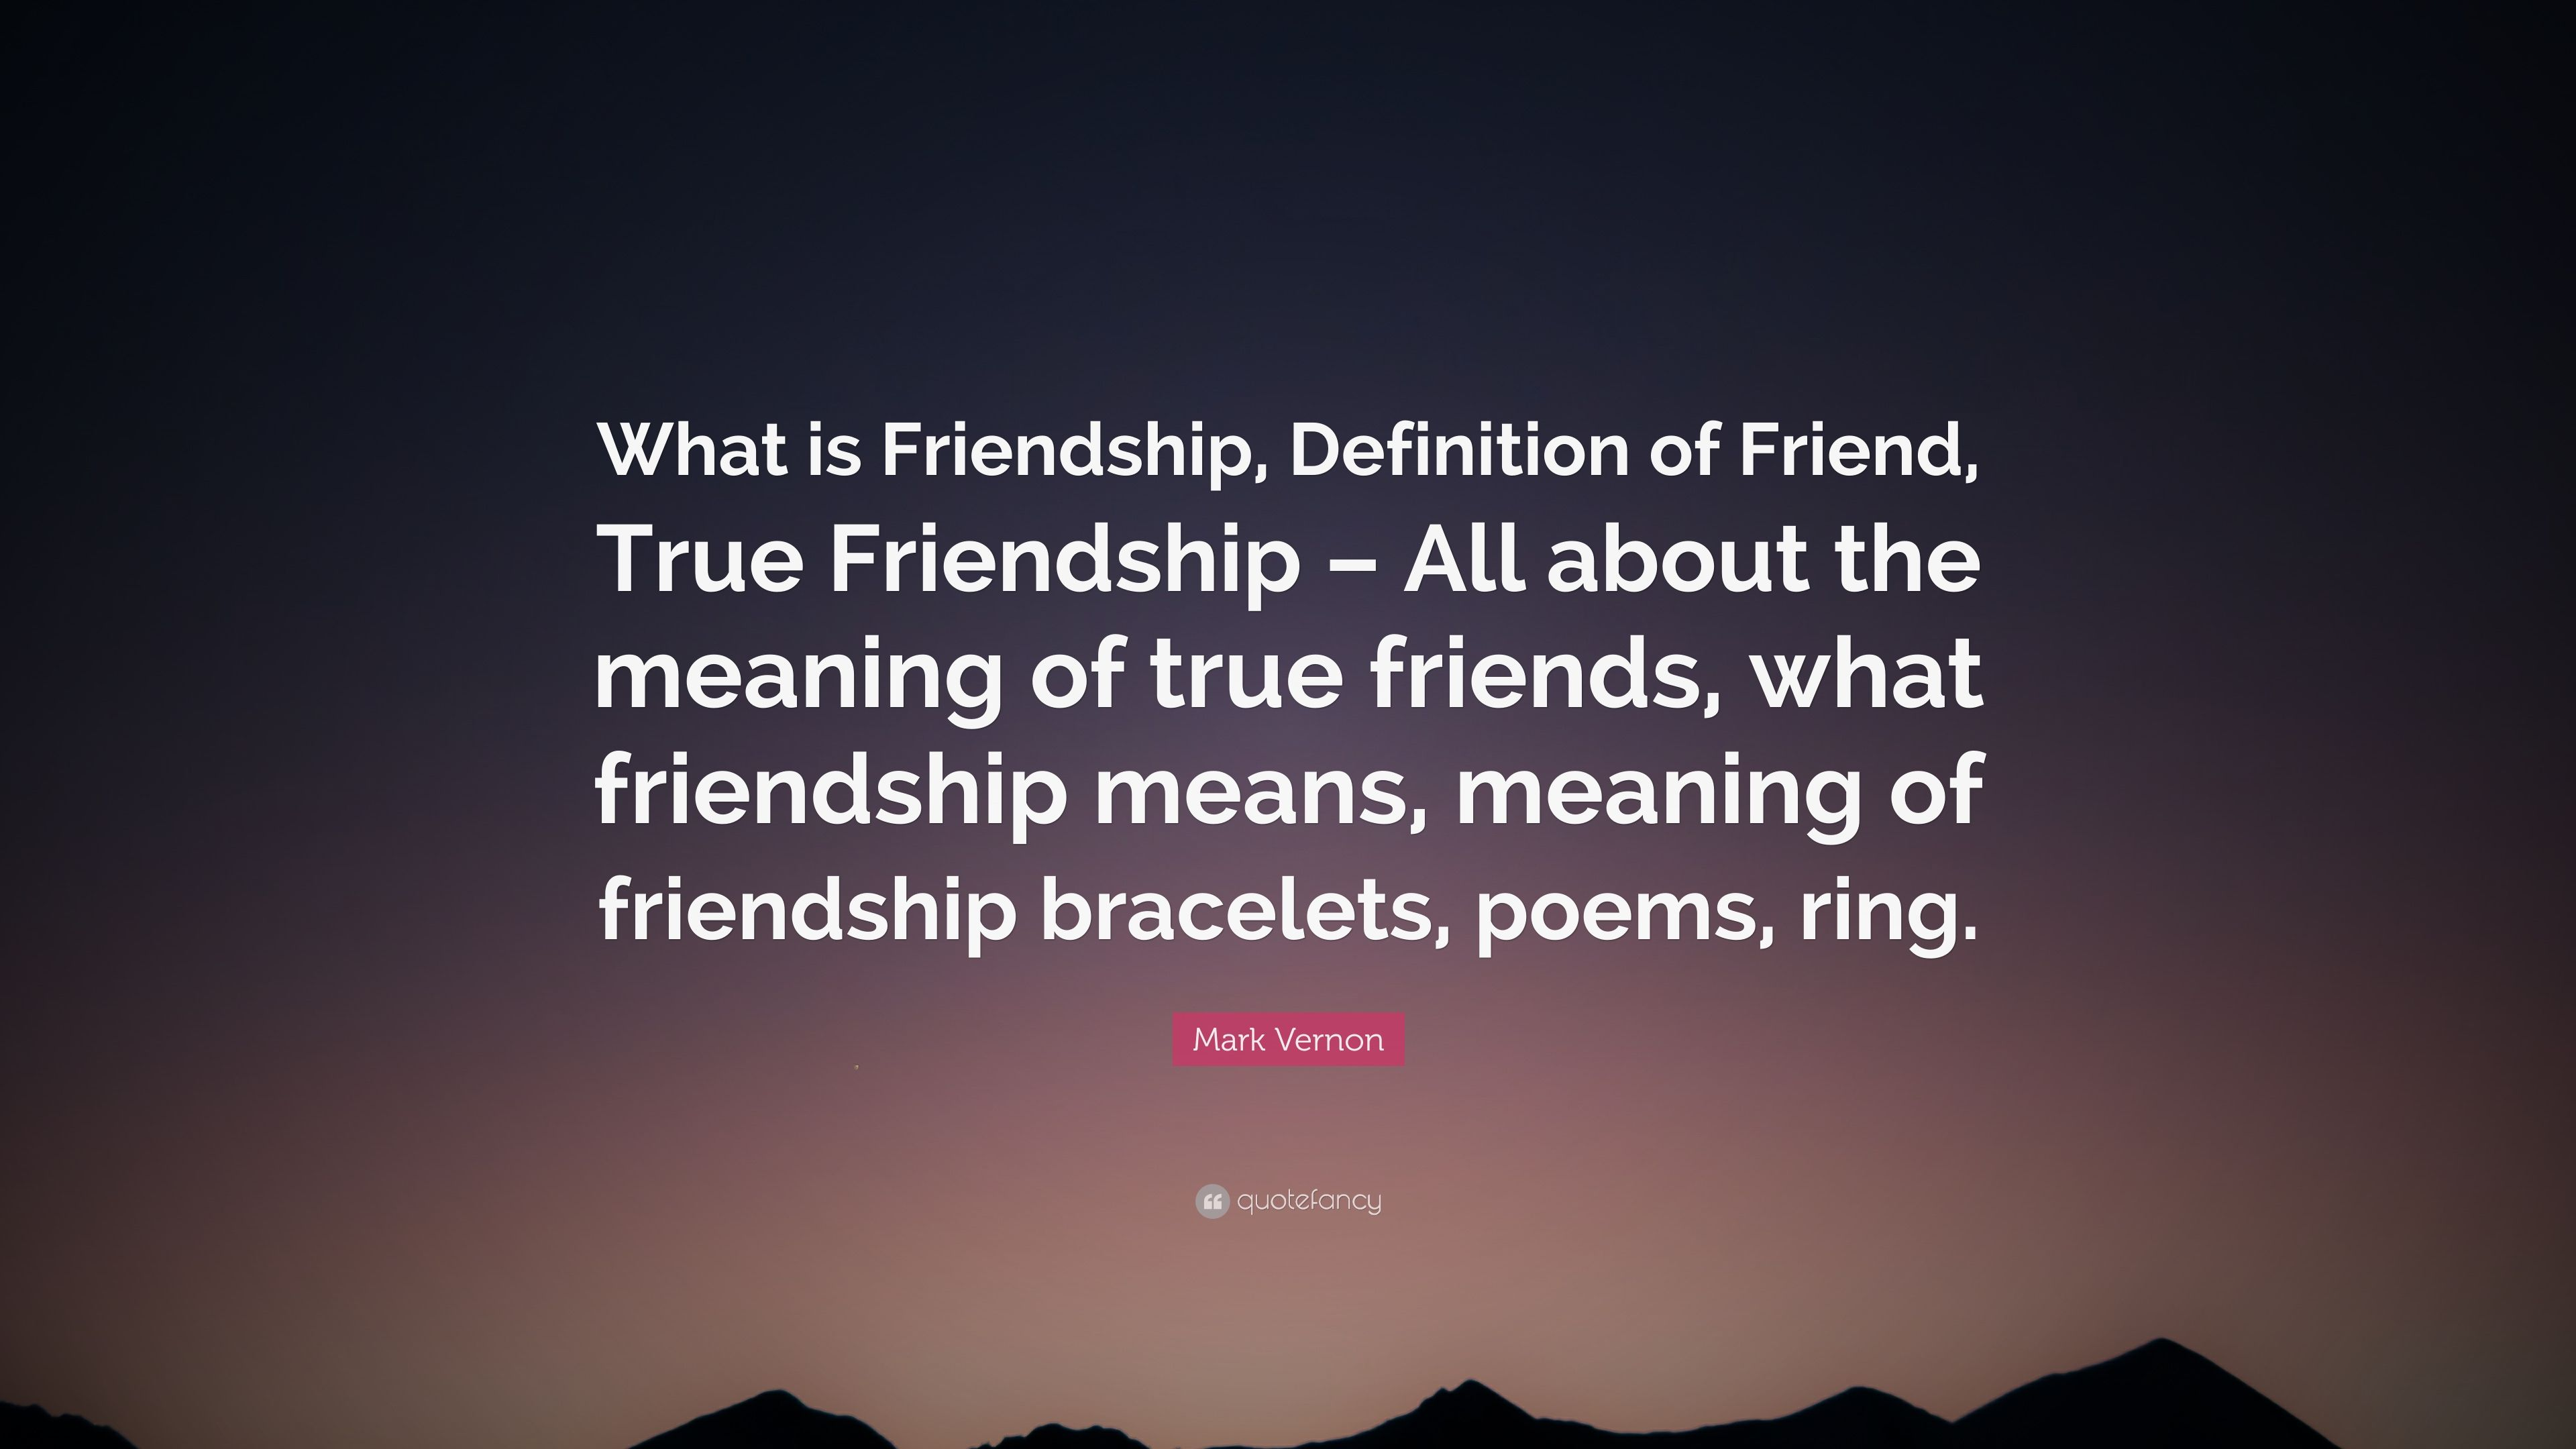 friendly relationship meaning definition